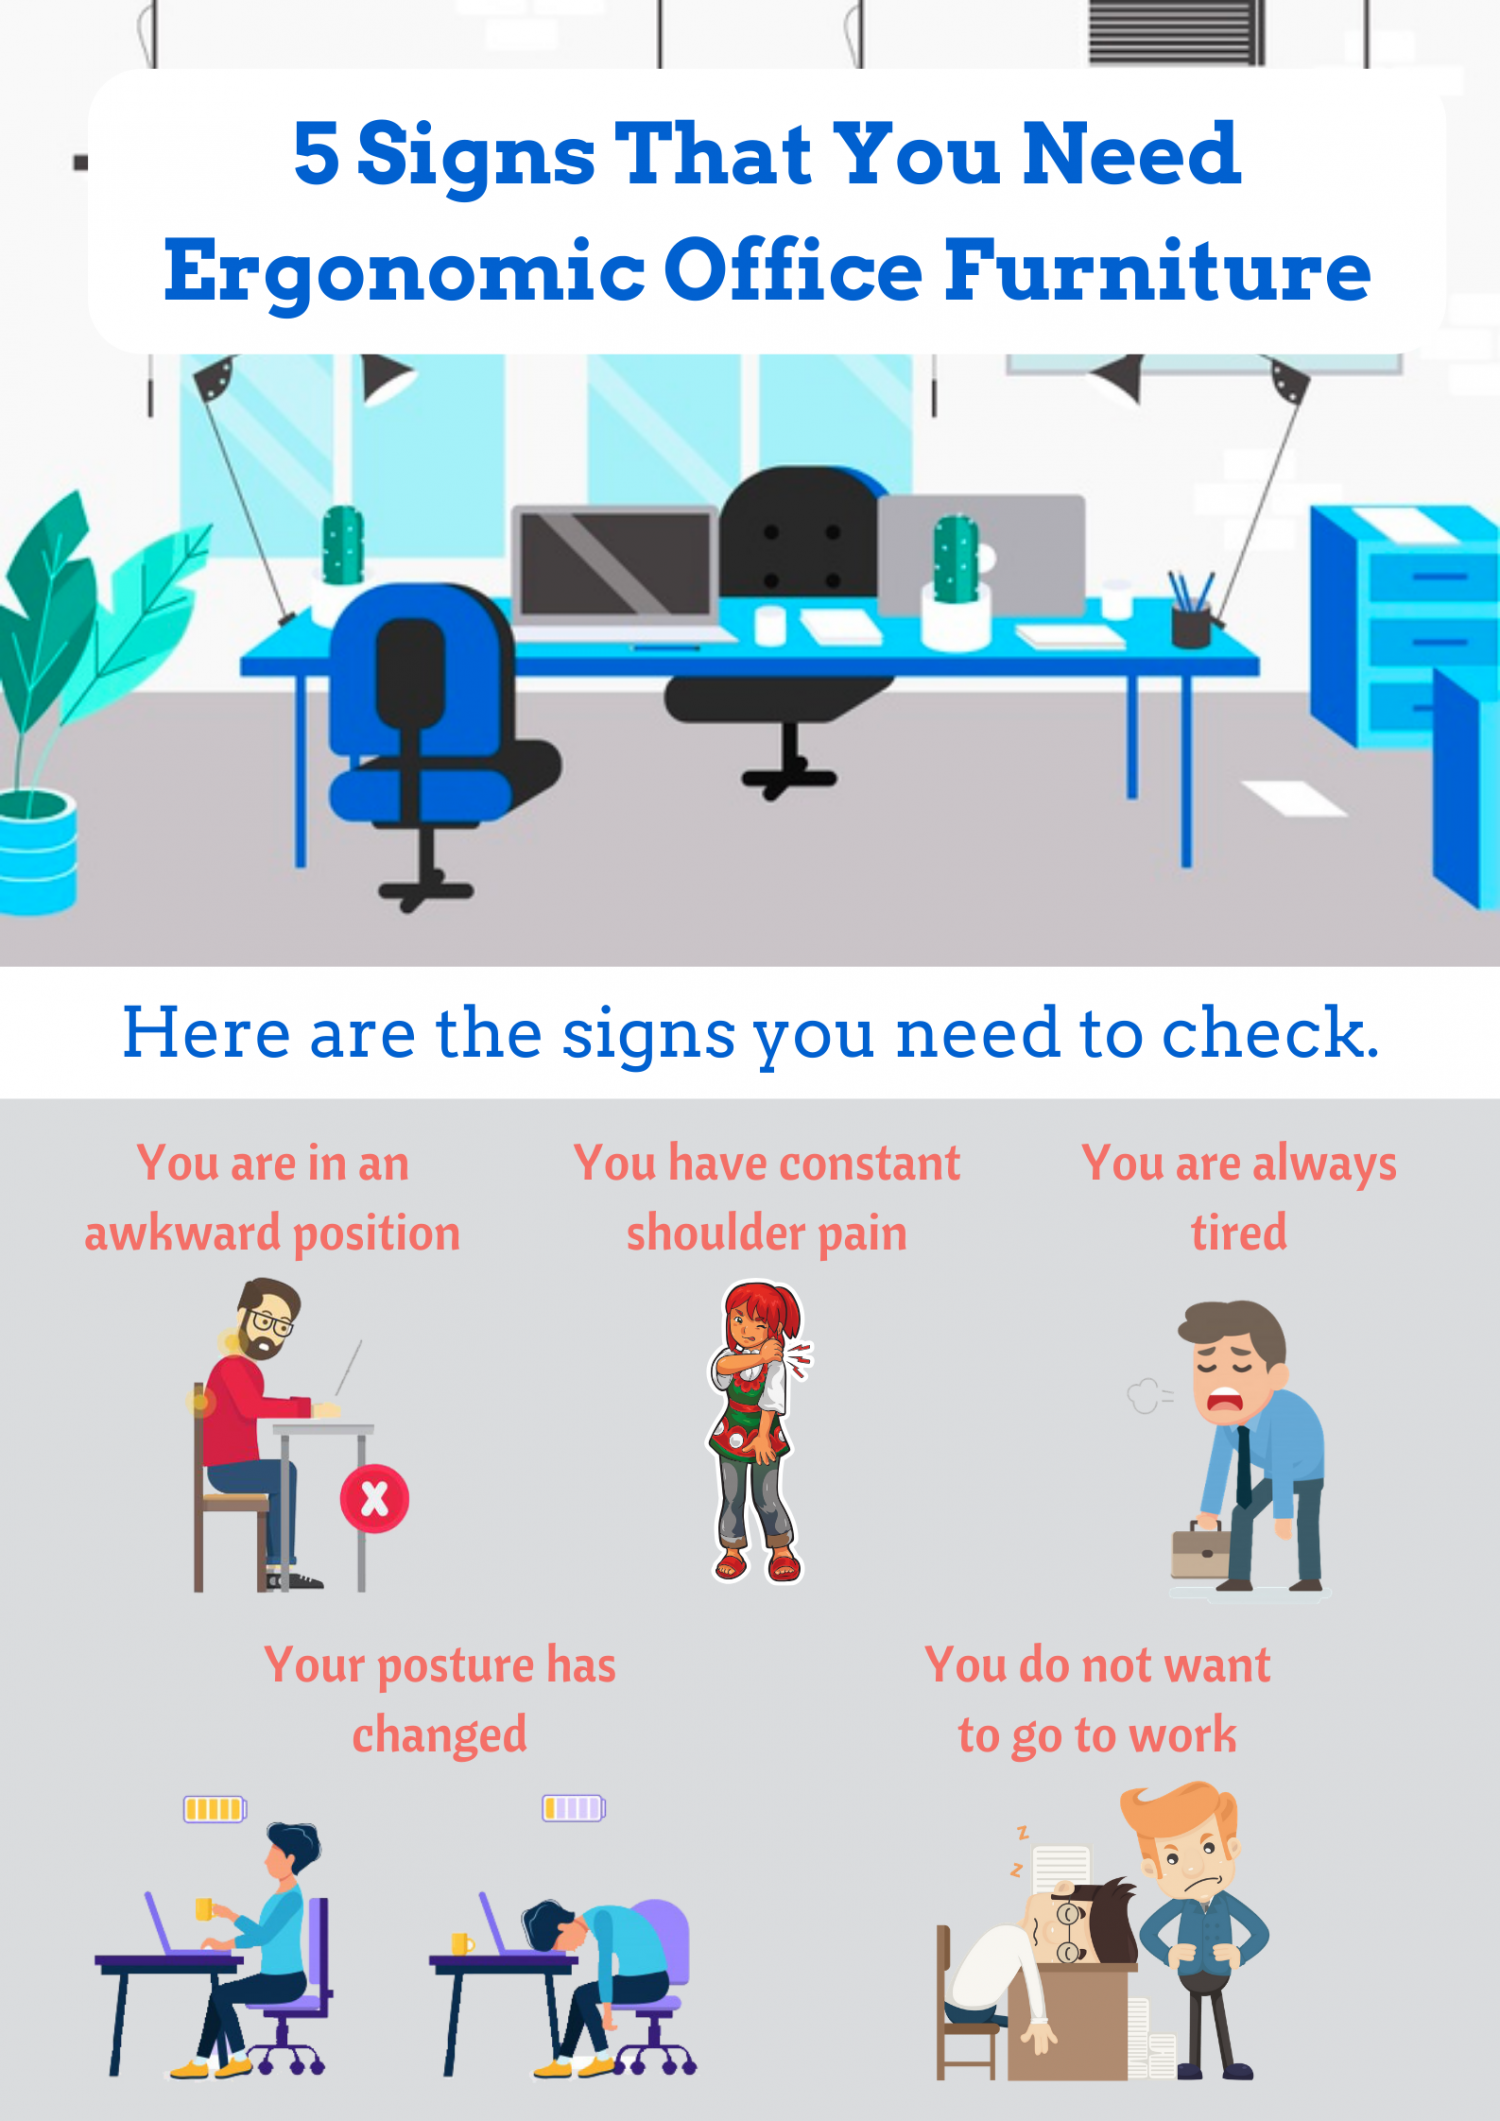 5 Signs That You Need Ergonomic Office Furniture Infographic